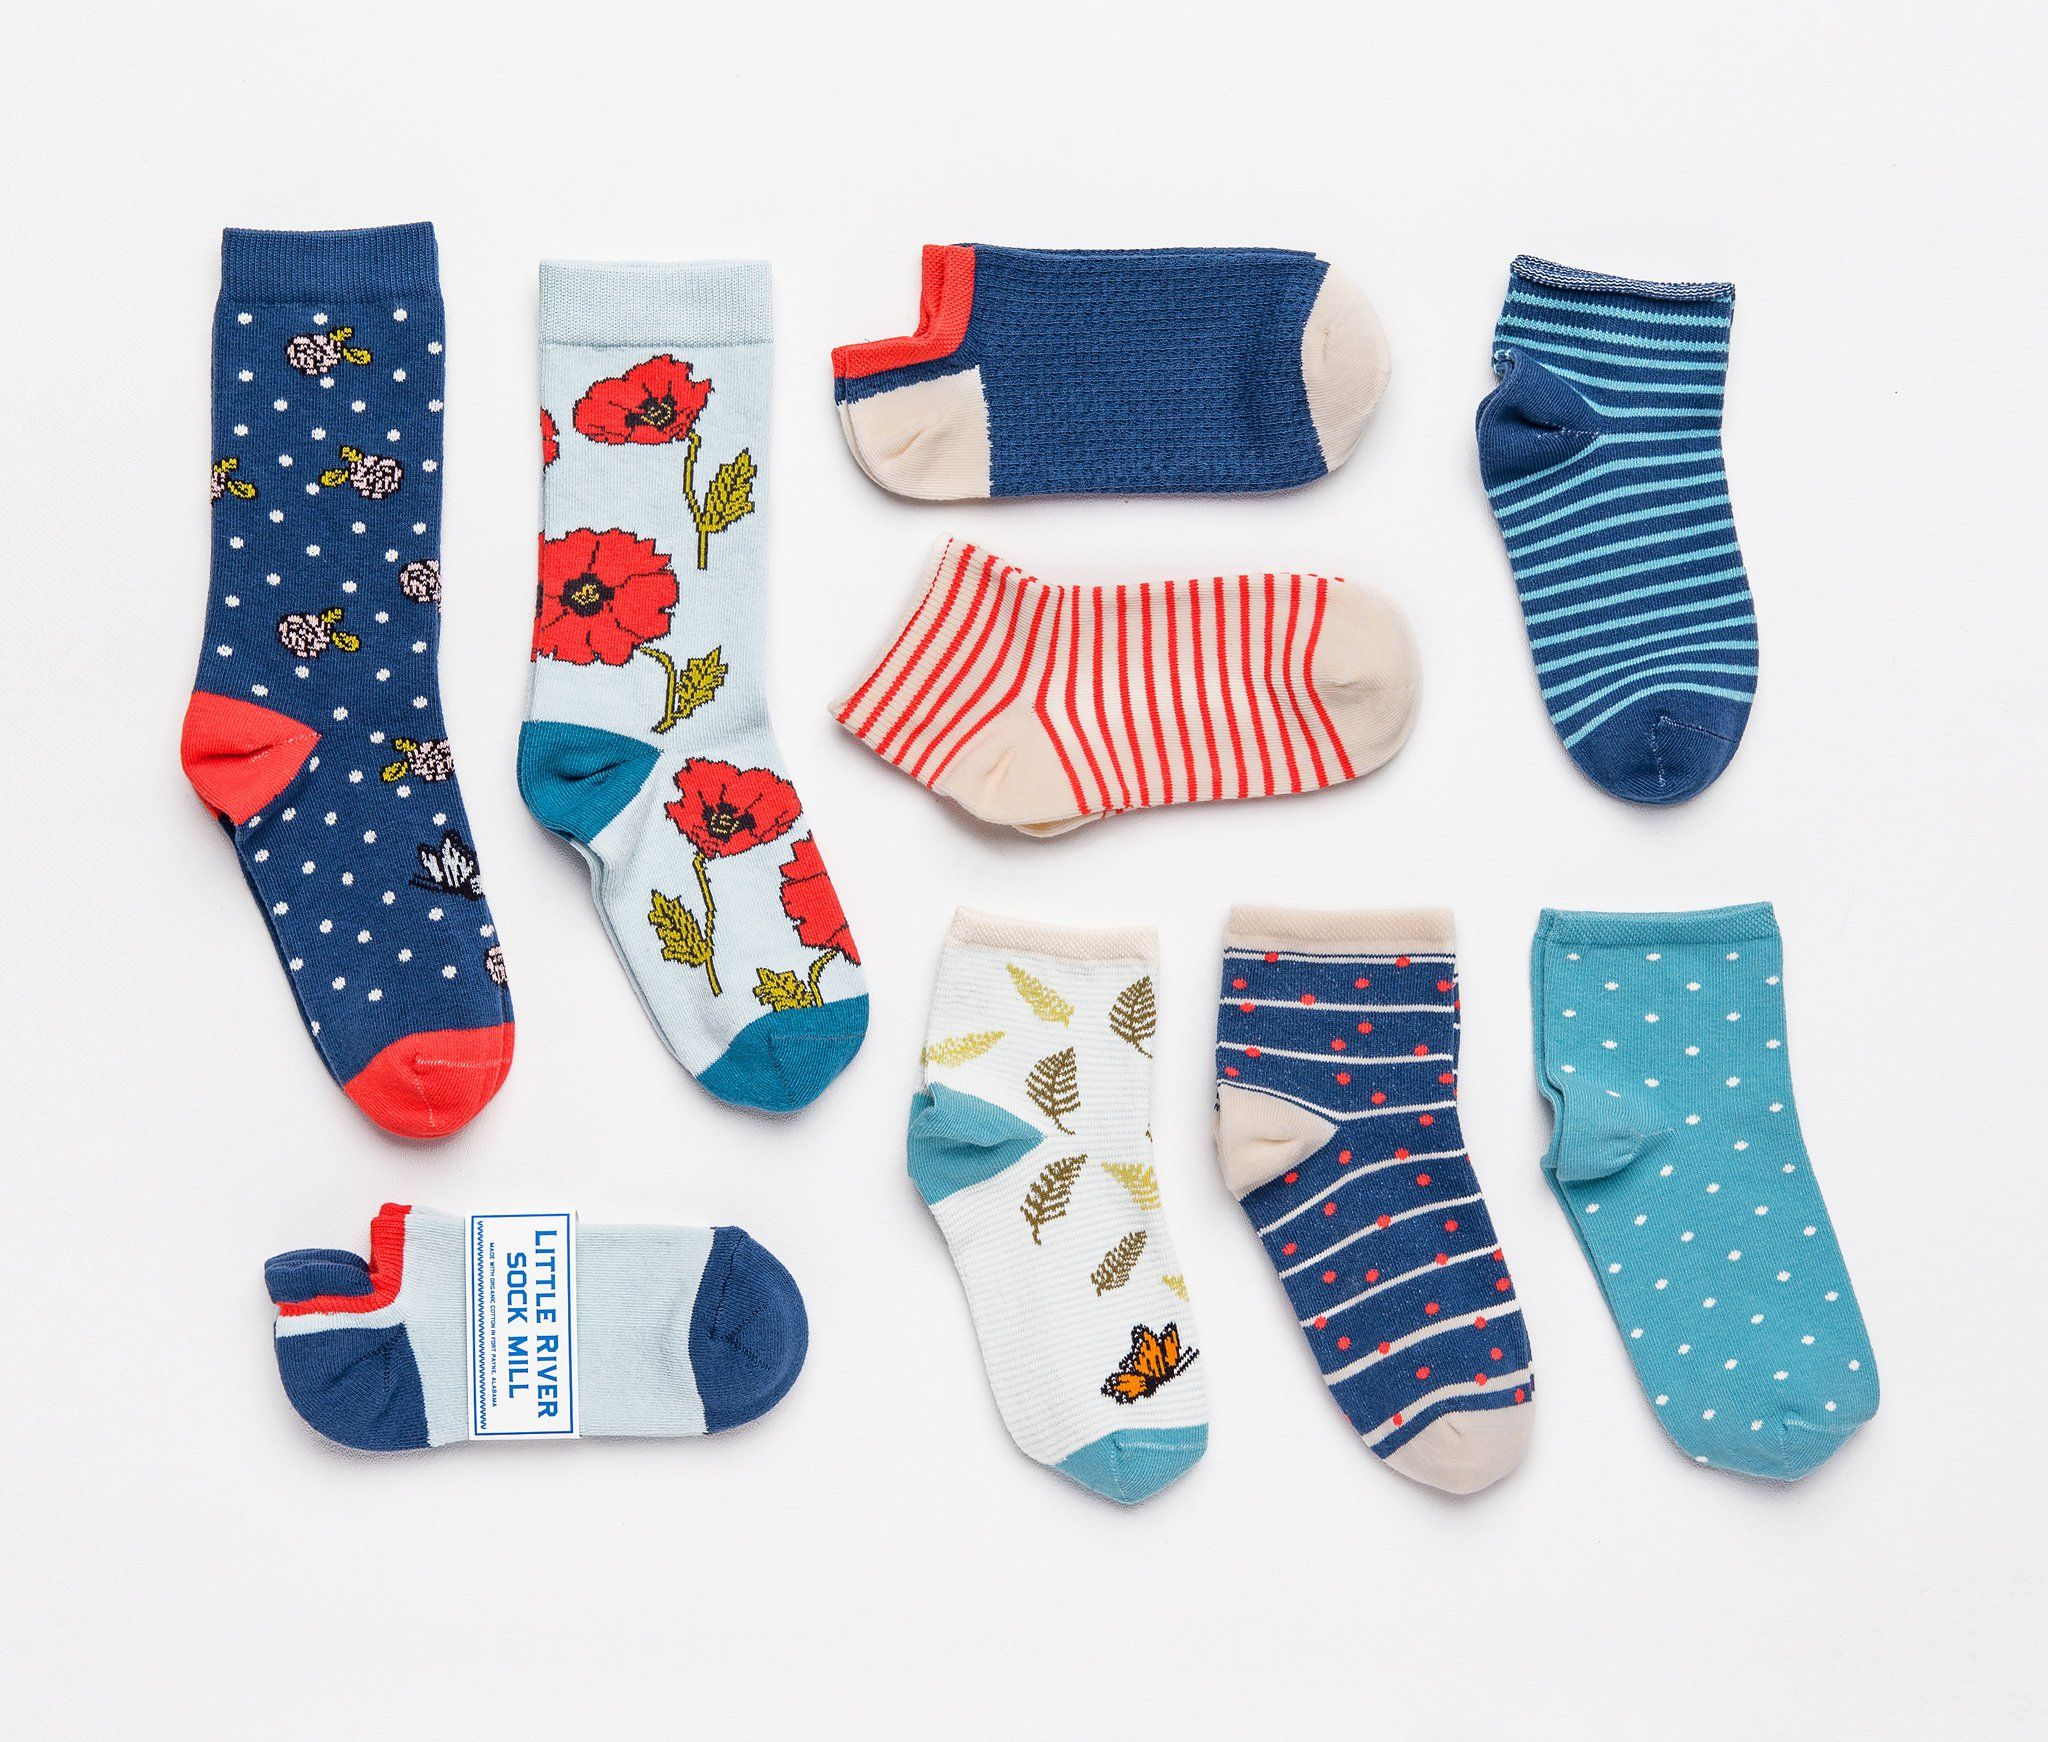 Organic cotton fashion socks made in USA, in Fort Payne